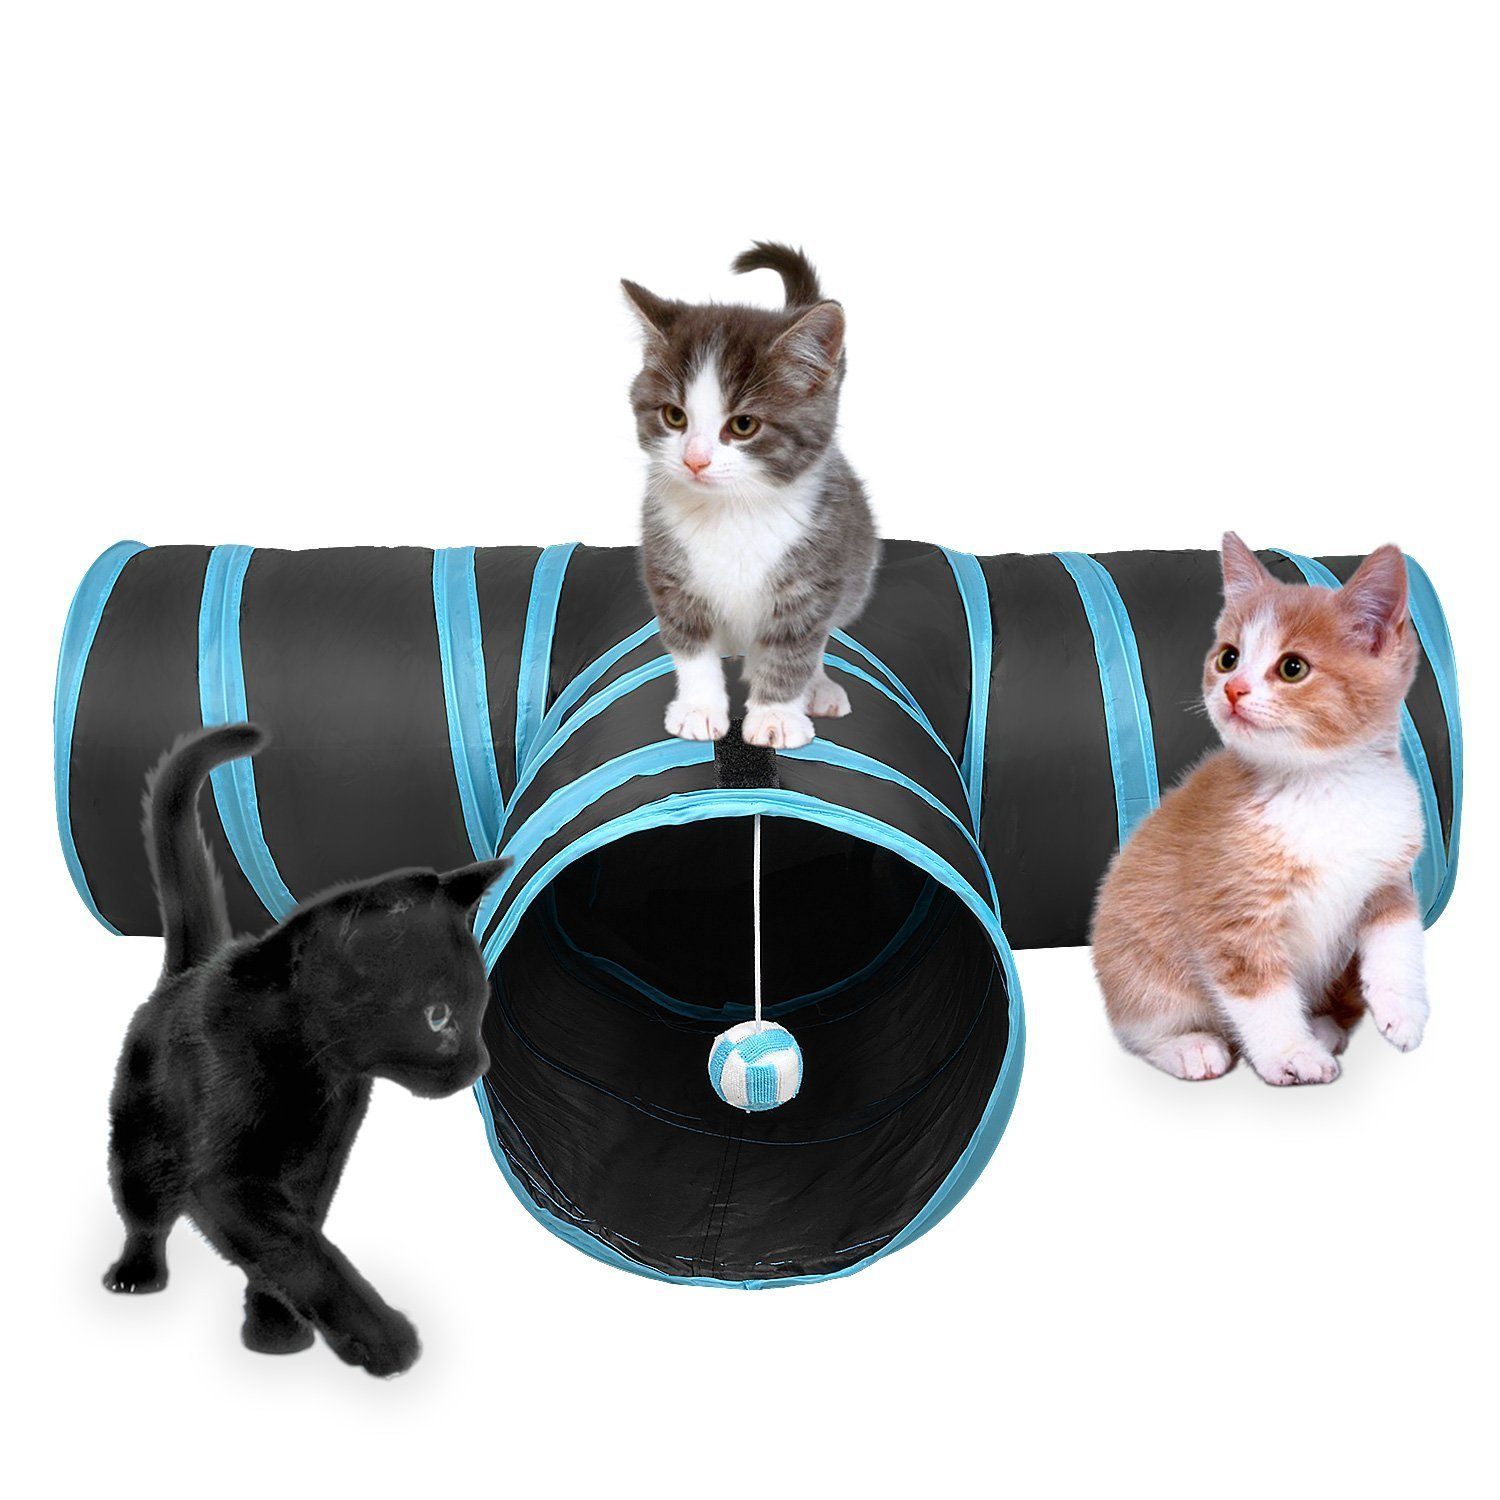 BBEART Pet Tunnels, Collapsible 3 Ways Play Toy Tunnel with Ball Tube Fun for Cat Kitten Puppy Rabbit Small Pets etc (Blue) by BBEART